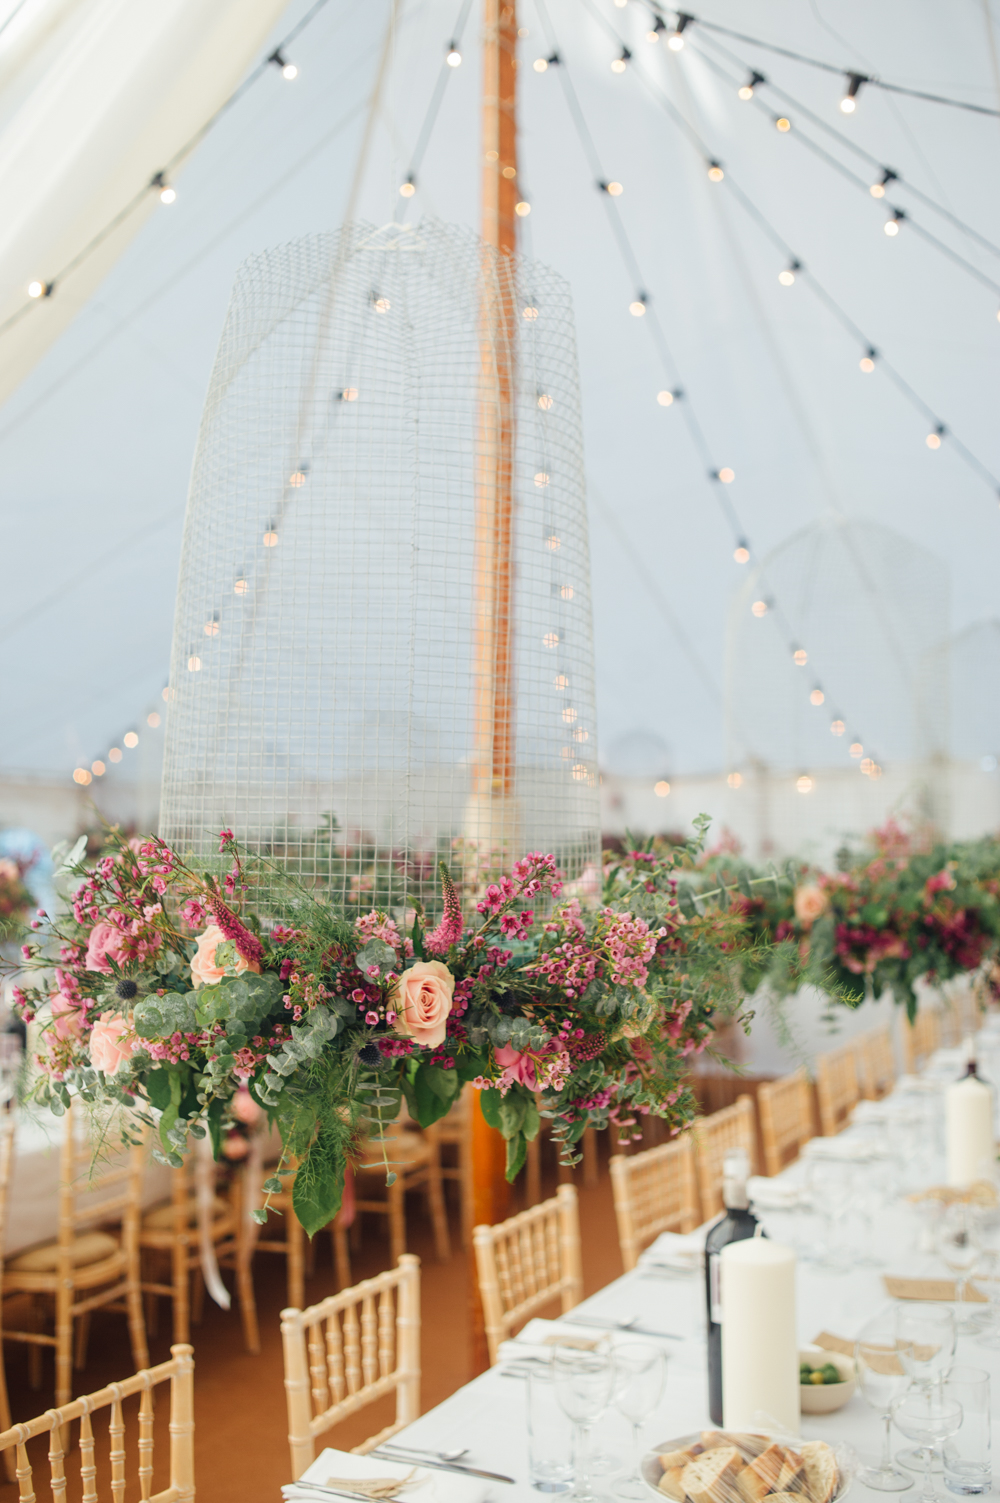 Top tips for planning your marquee wedding for Indoor marquee decoration